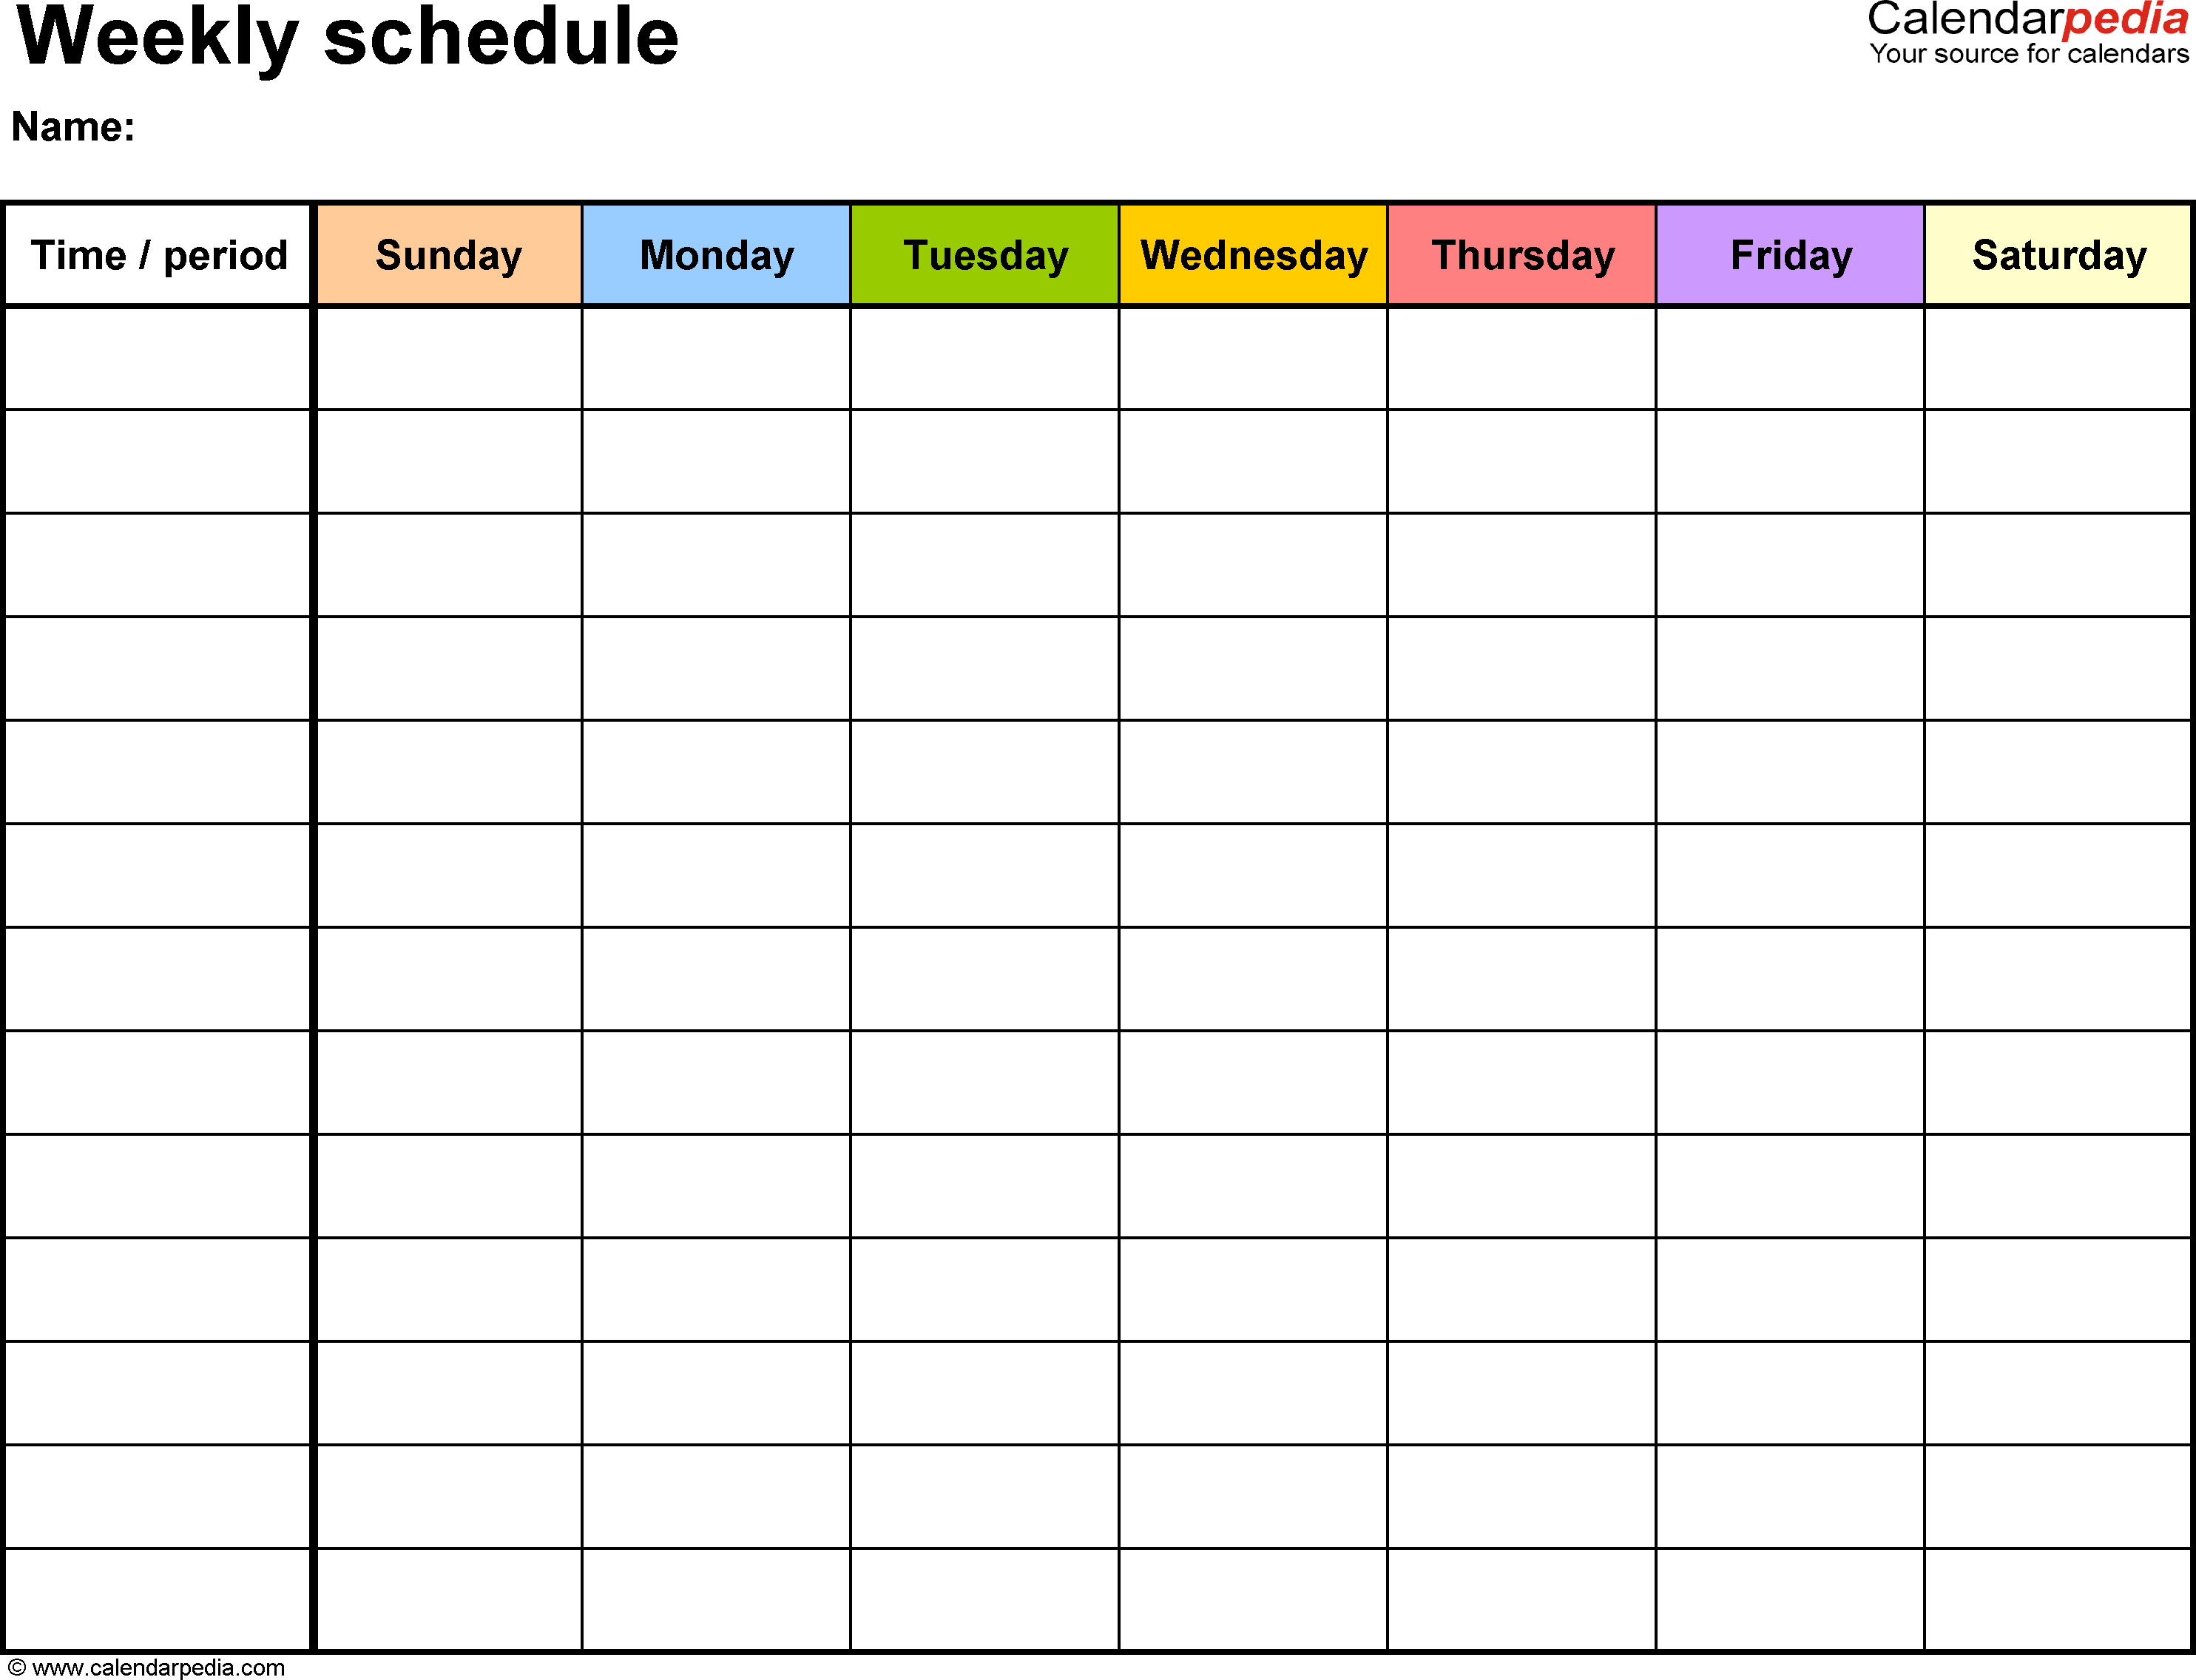 Free Weekly Schedule Templates For Excel - 18 Templates Intended For Monthly Work Schedule Template Free